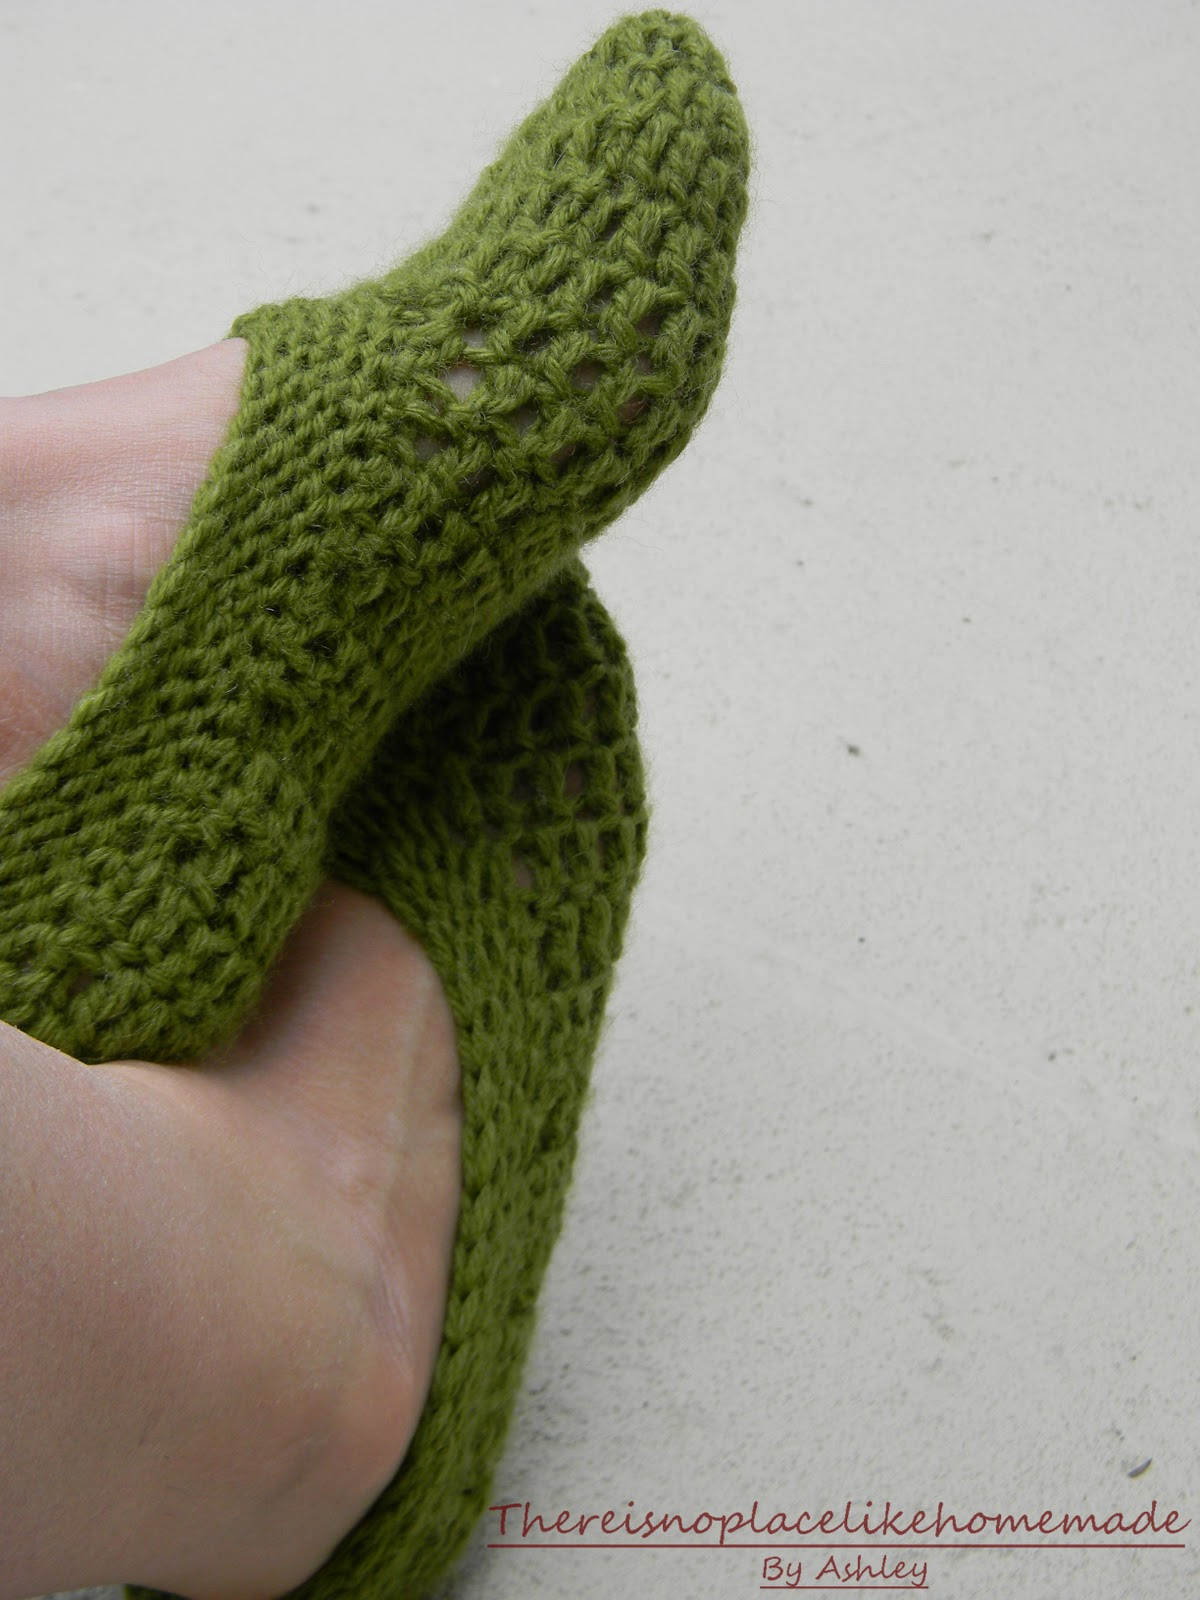 knitted-tv-slippers Images - Frompo - 1